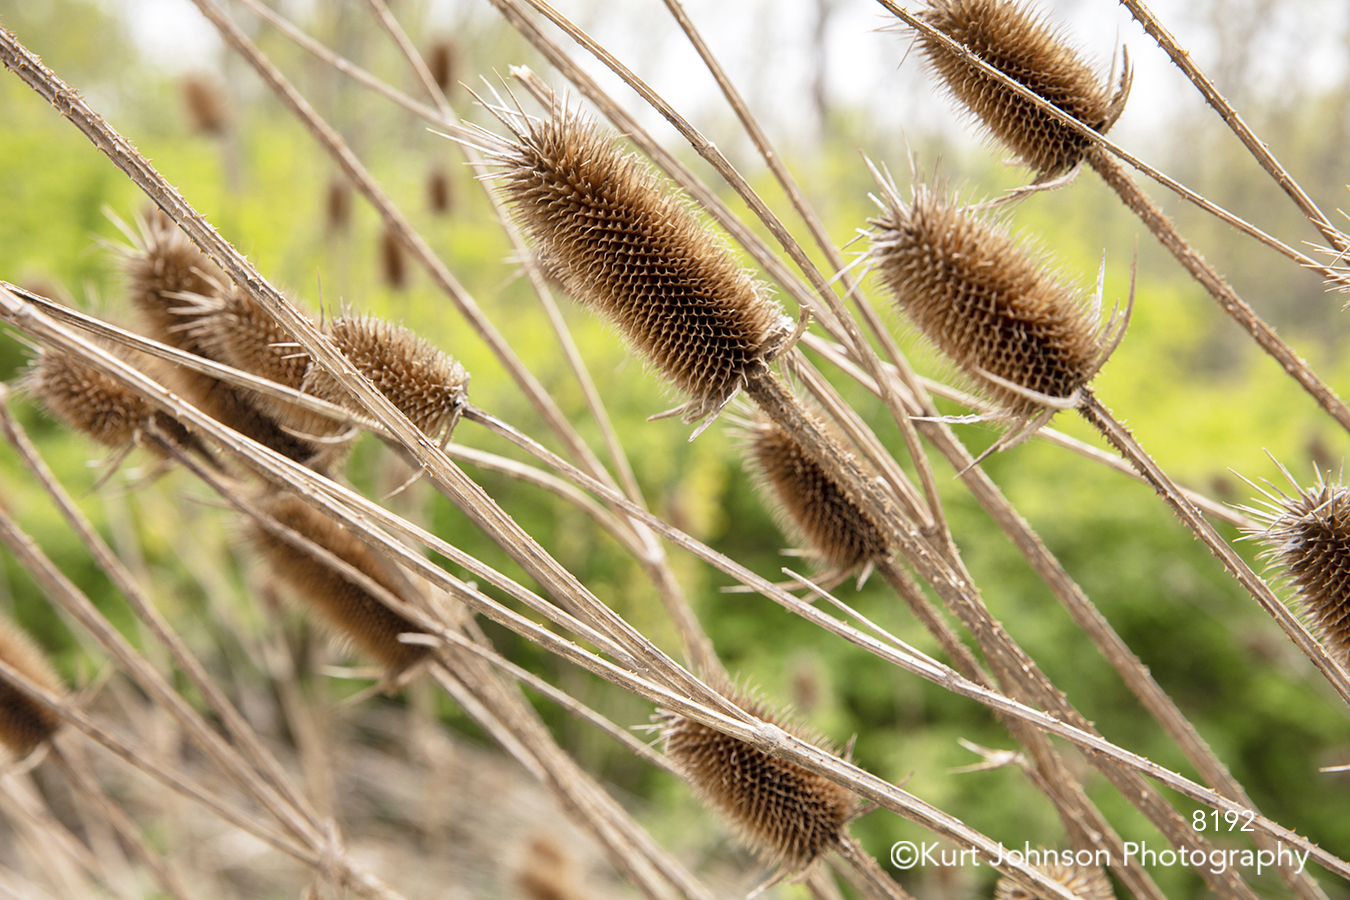 brown grass grasses field wheat close up detail lines pattern texture